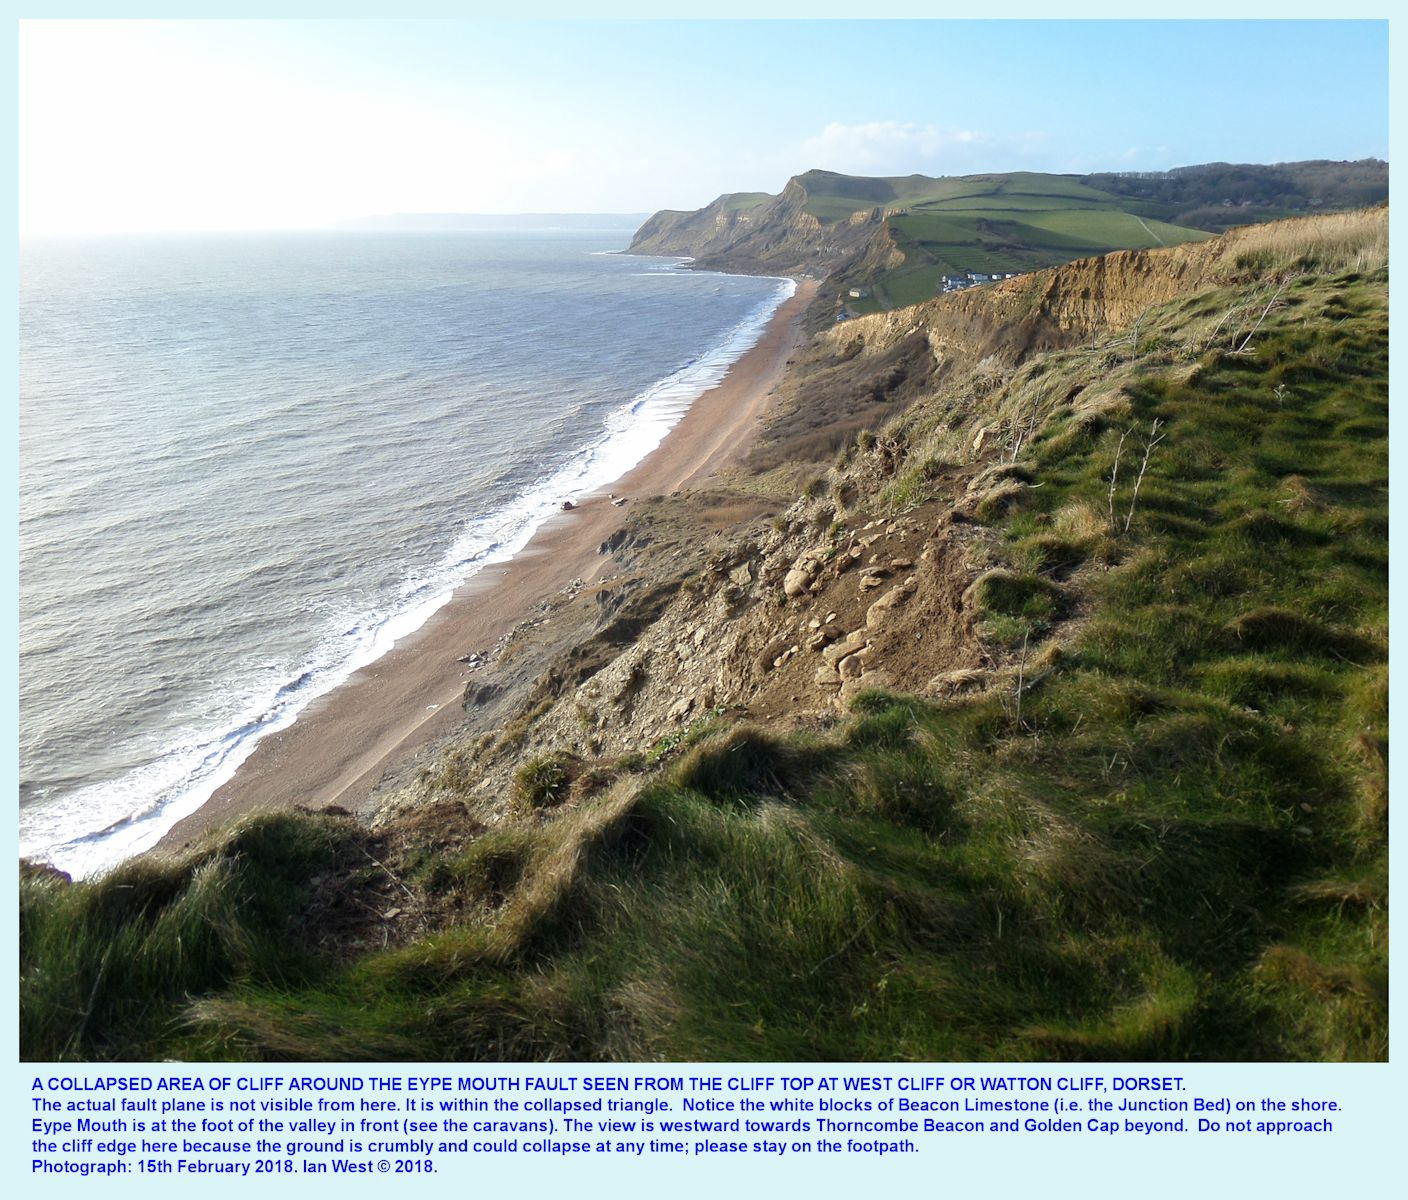 Fault Corner, Eype's Mouth, near Bridport, as seen from the cliff edge above, on the 15th February 2018